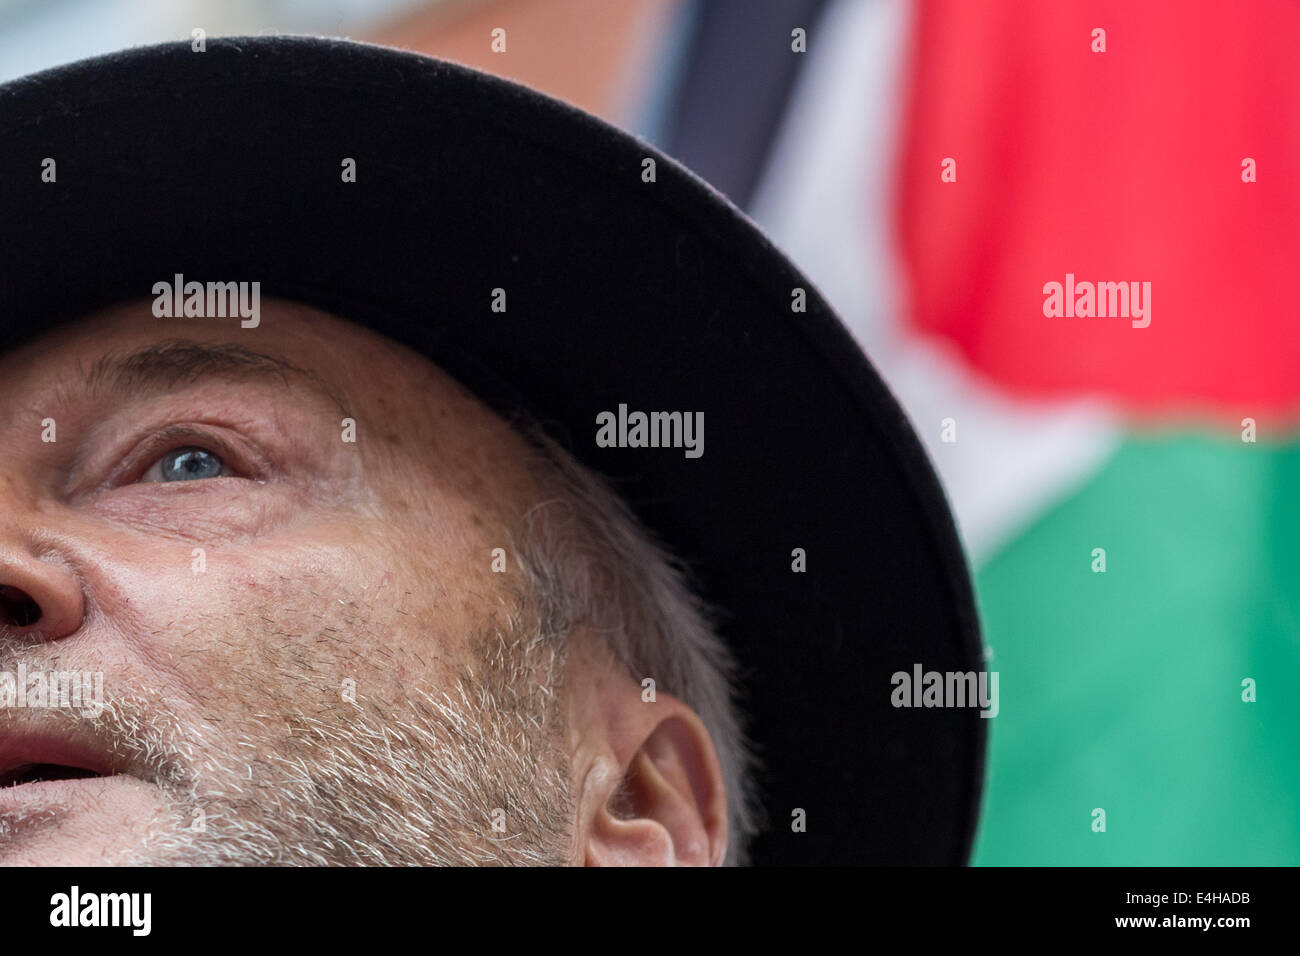 London, UK. 11th July, 2014. George Galloway, Respect Party Member of Parliament, speaks at the protest against - Stock Image